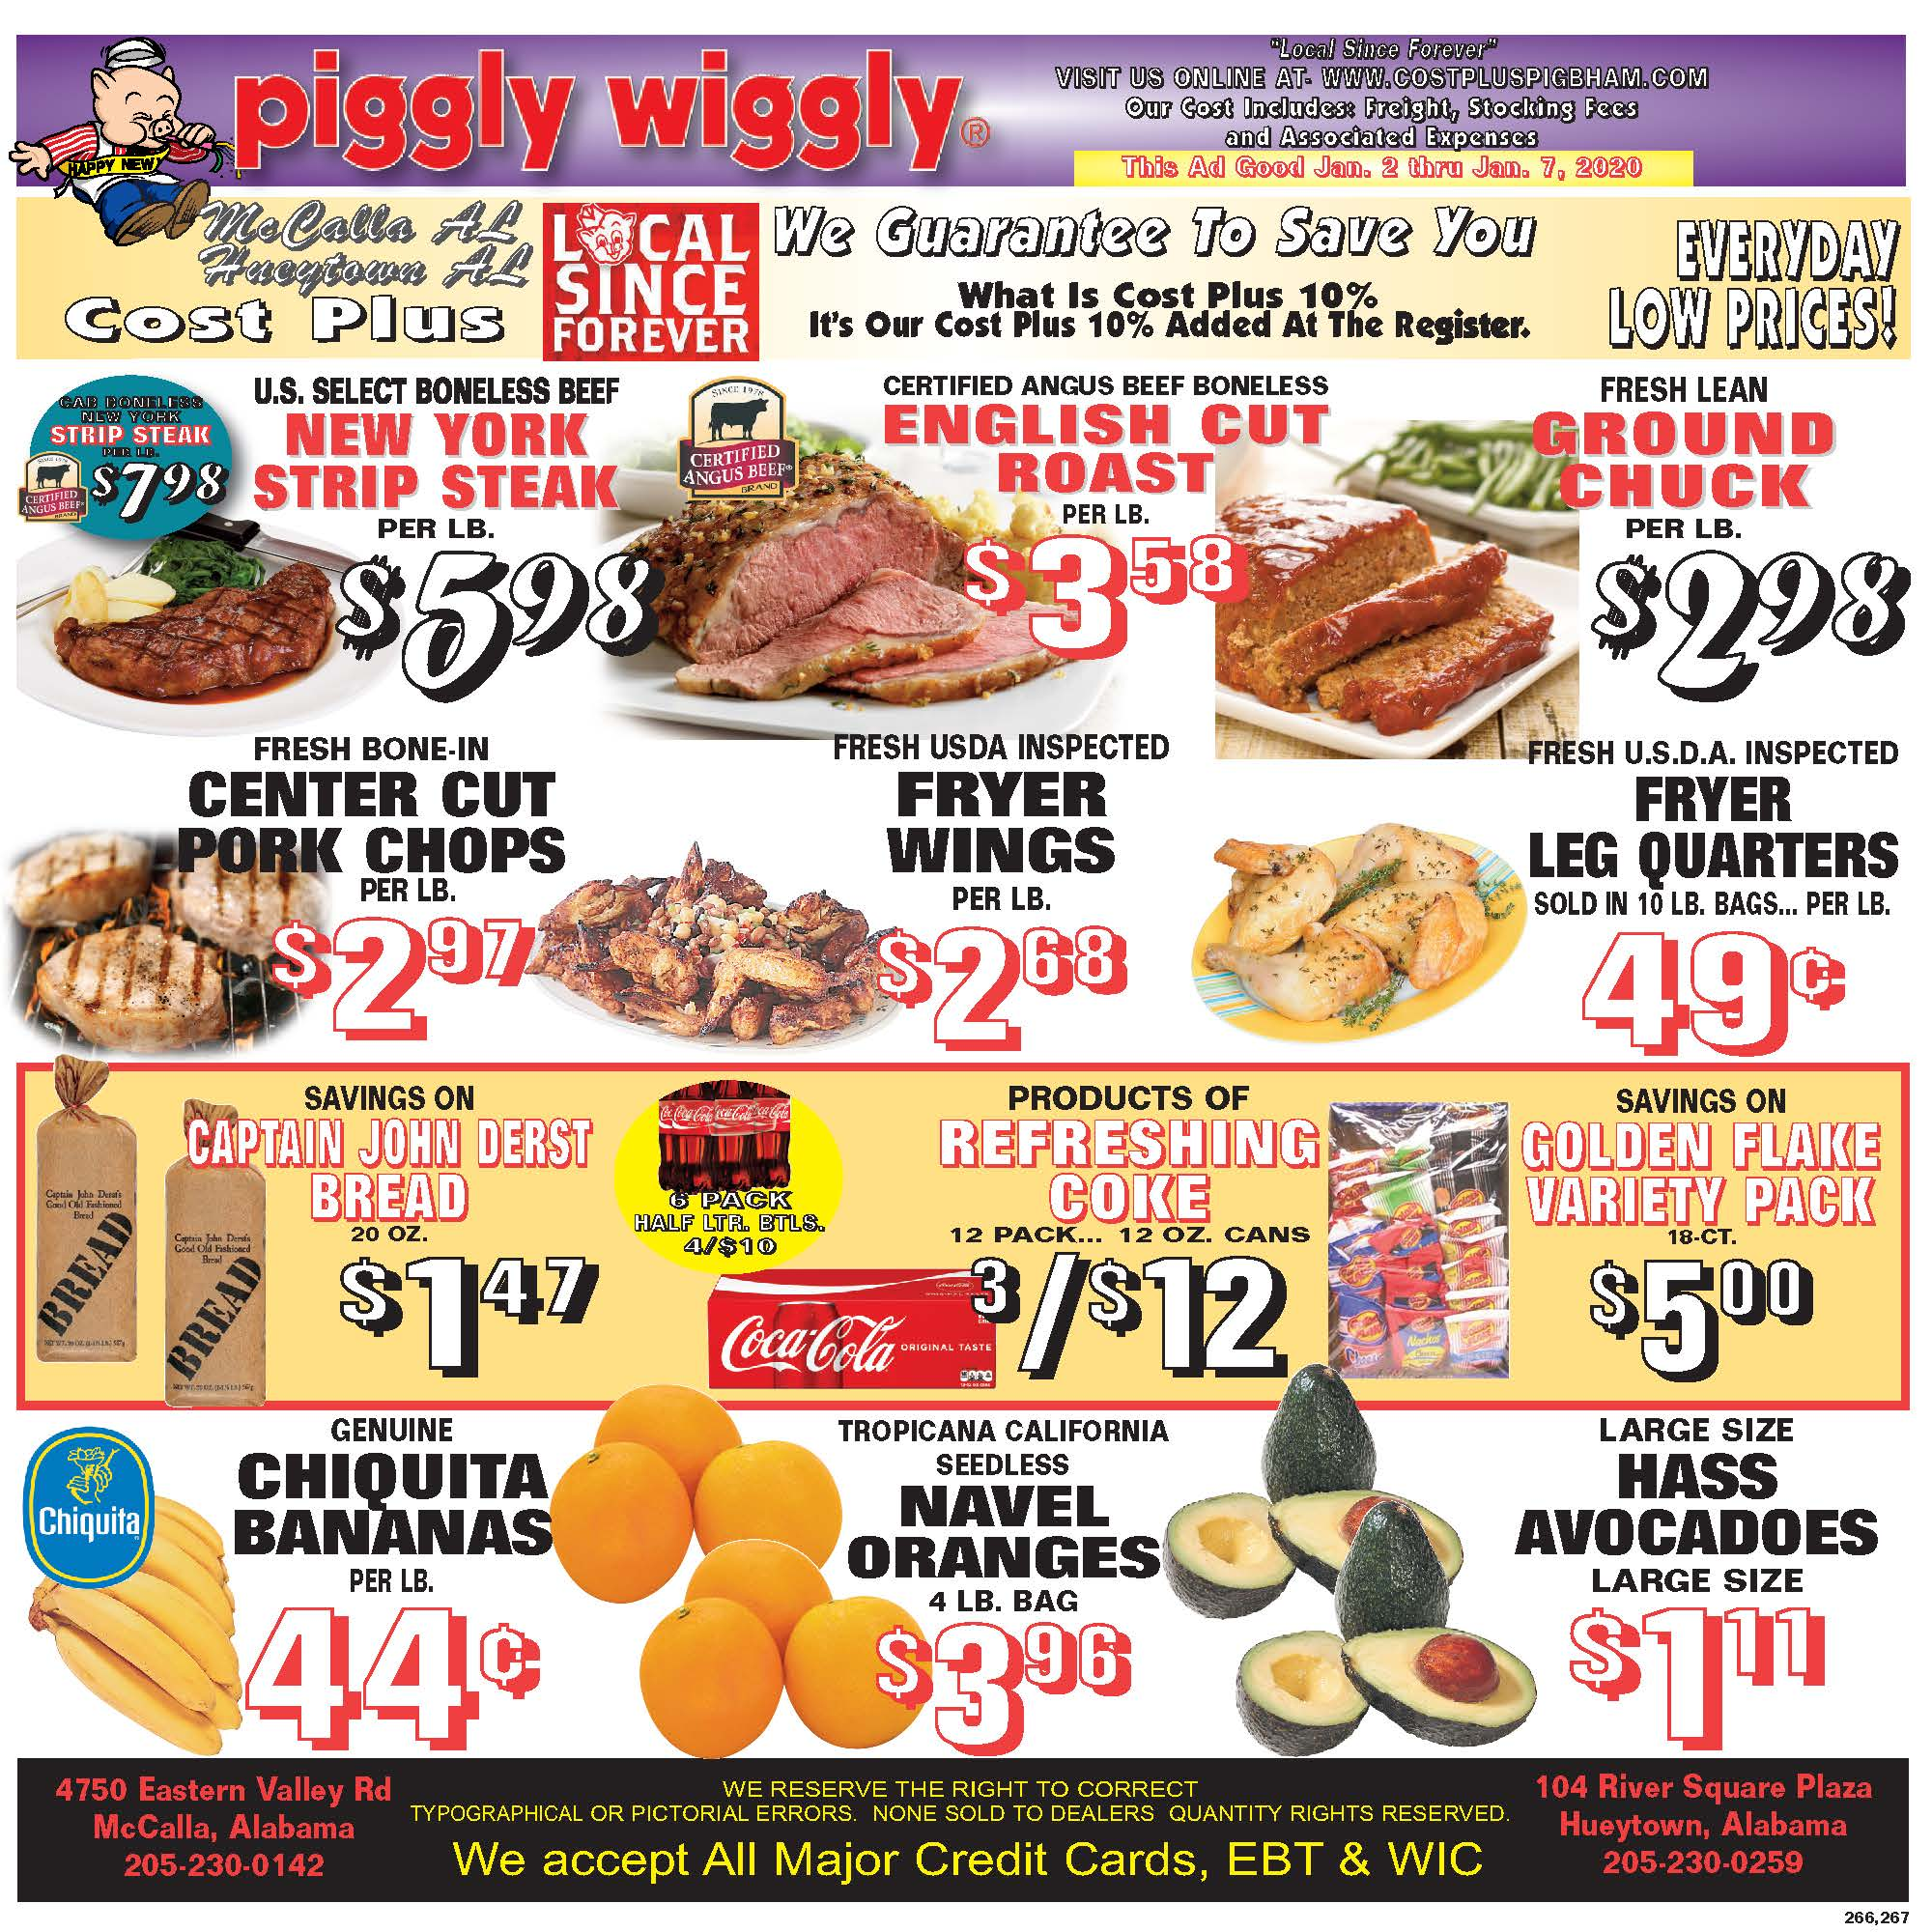 Weekly Ads - McCalla - Food For Less Piggly Wiggly Cost Plus